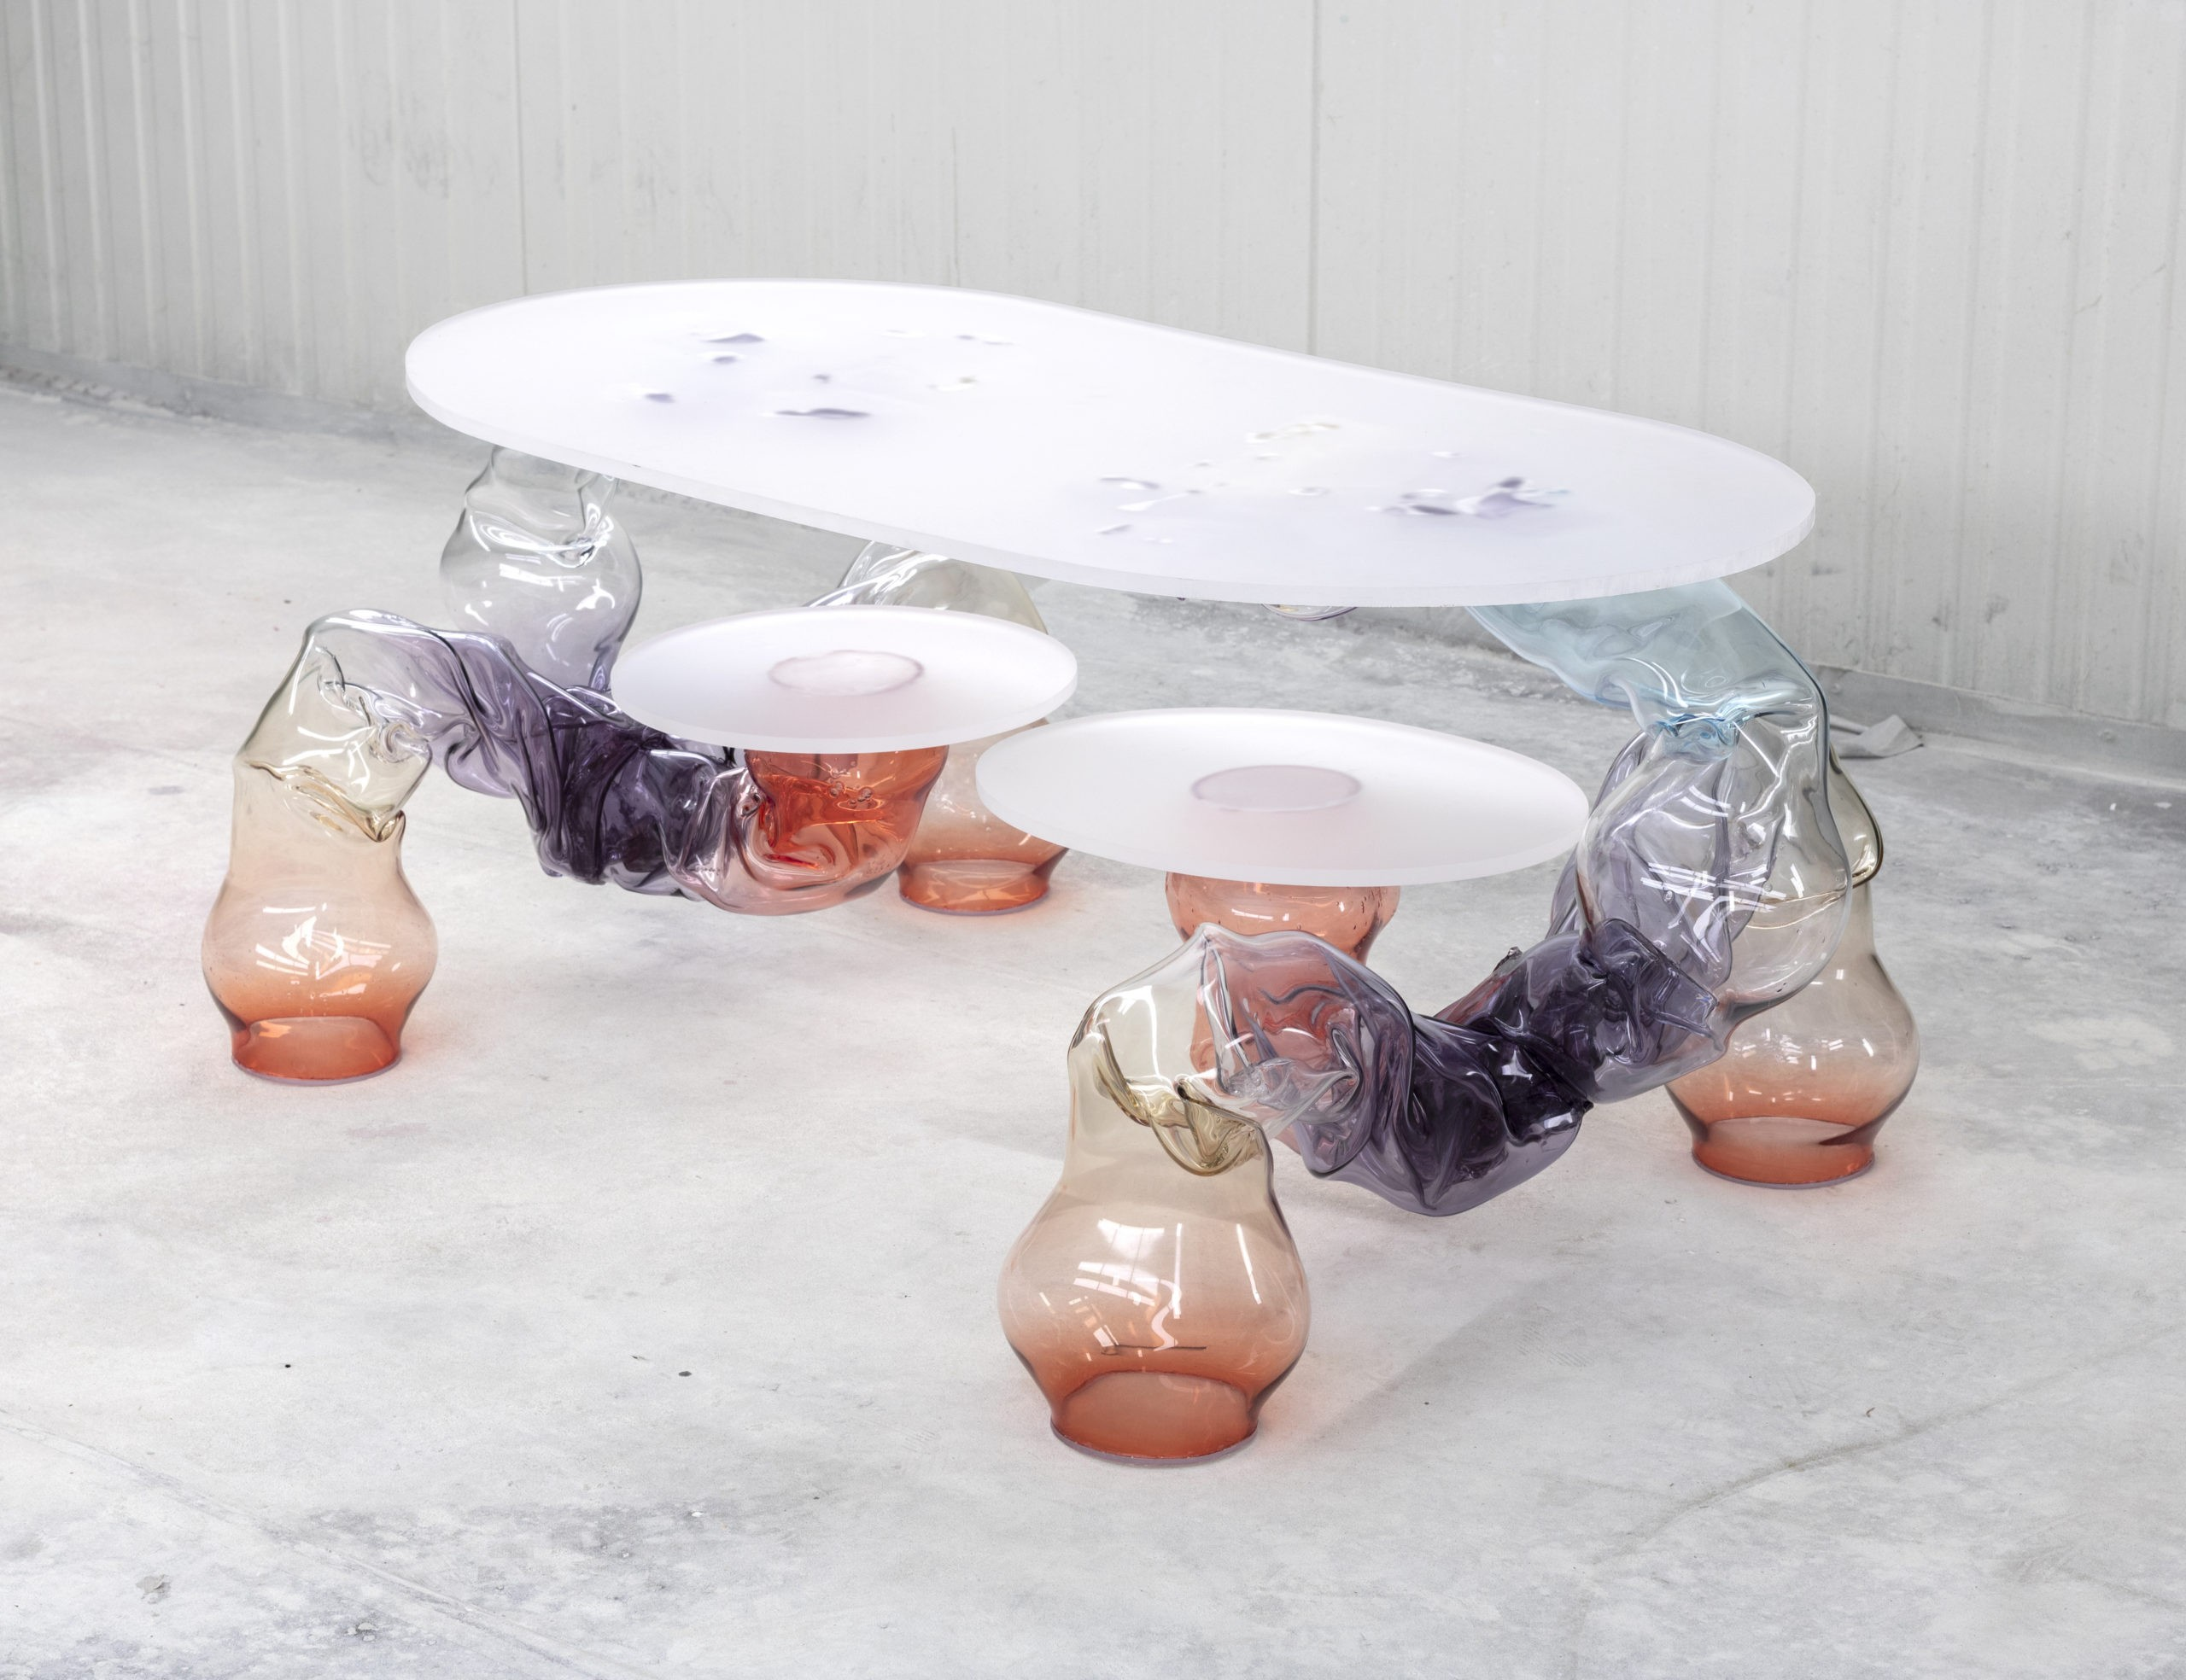 Stay on top of the highlights of Paris Design Week and Maison&Objet (Photo: Disclosure)